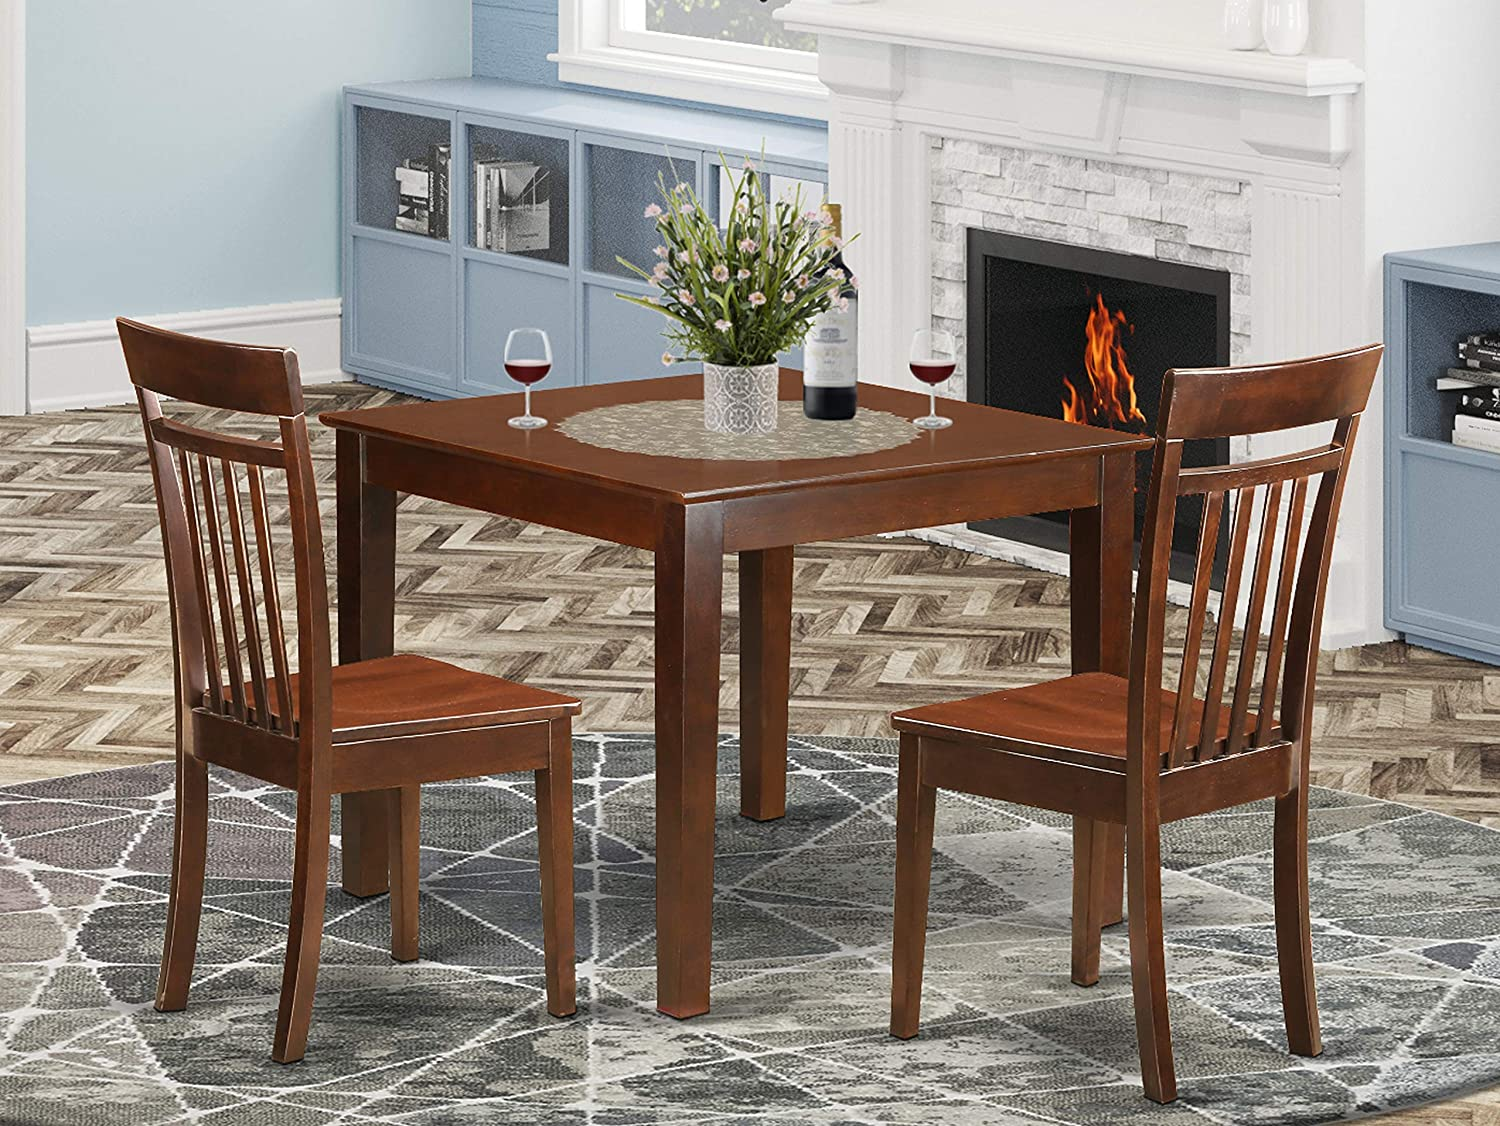 9 PC Dinette Table set with a Dining Table and 9 Dining Chairs in Mahogany